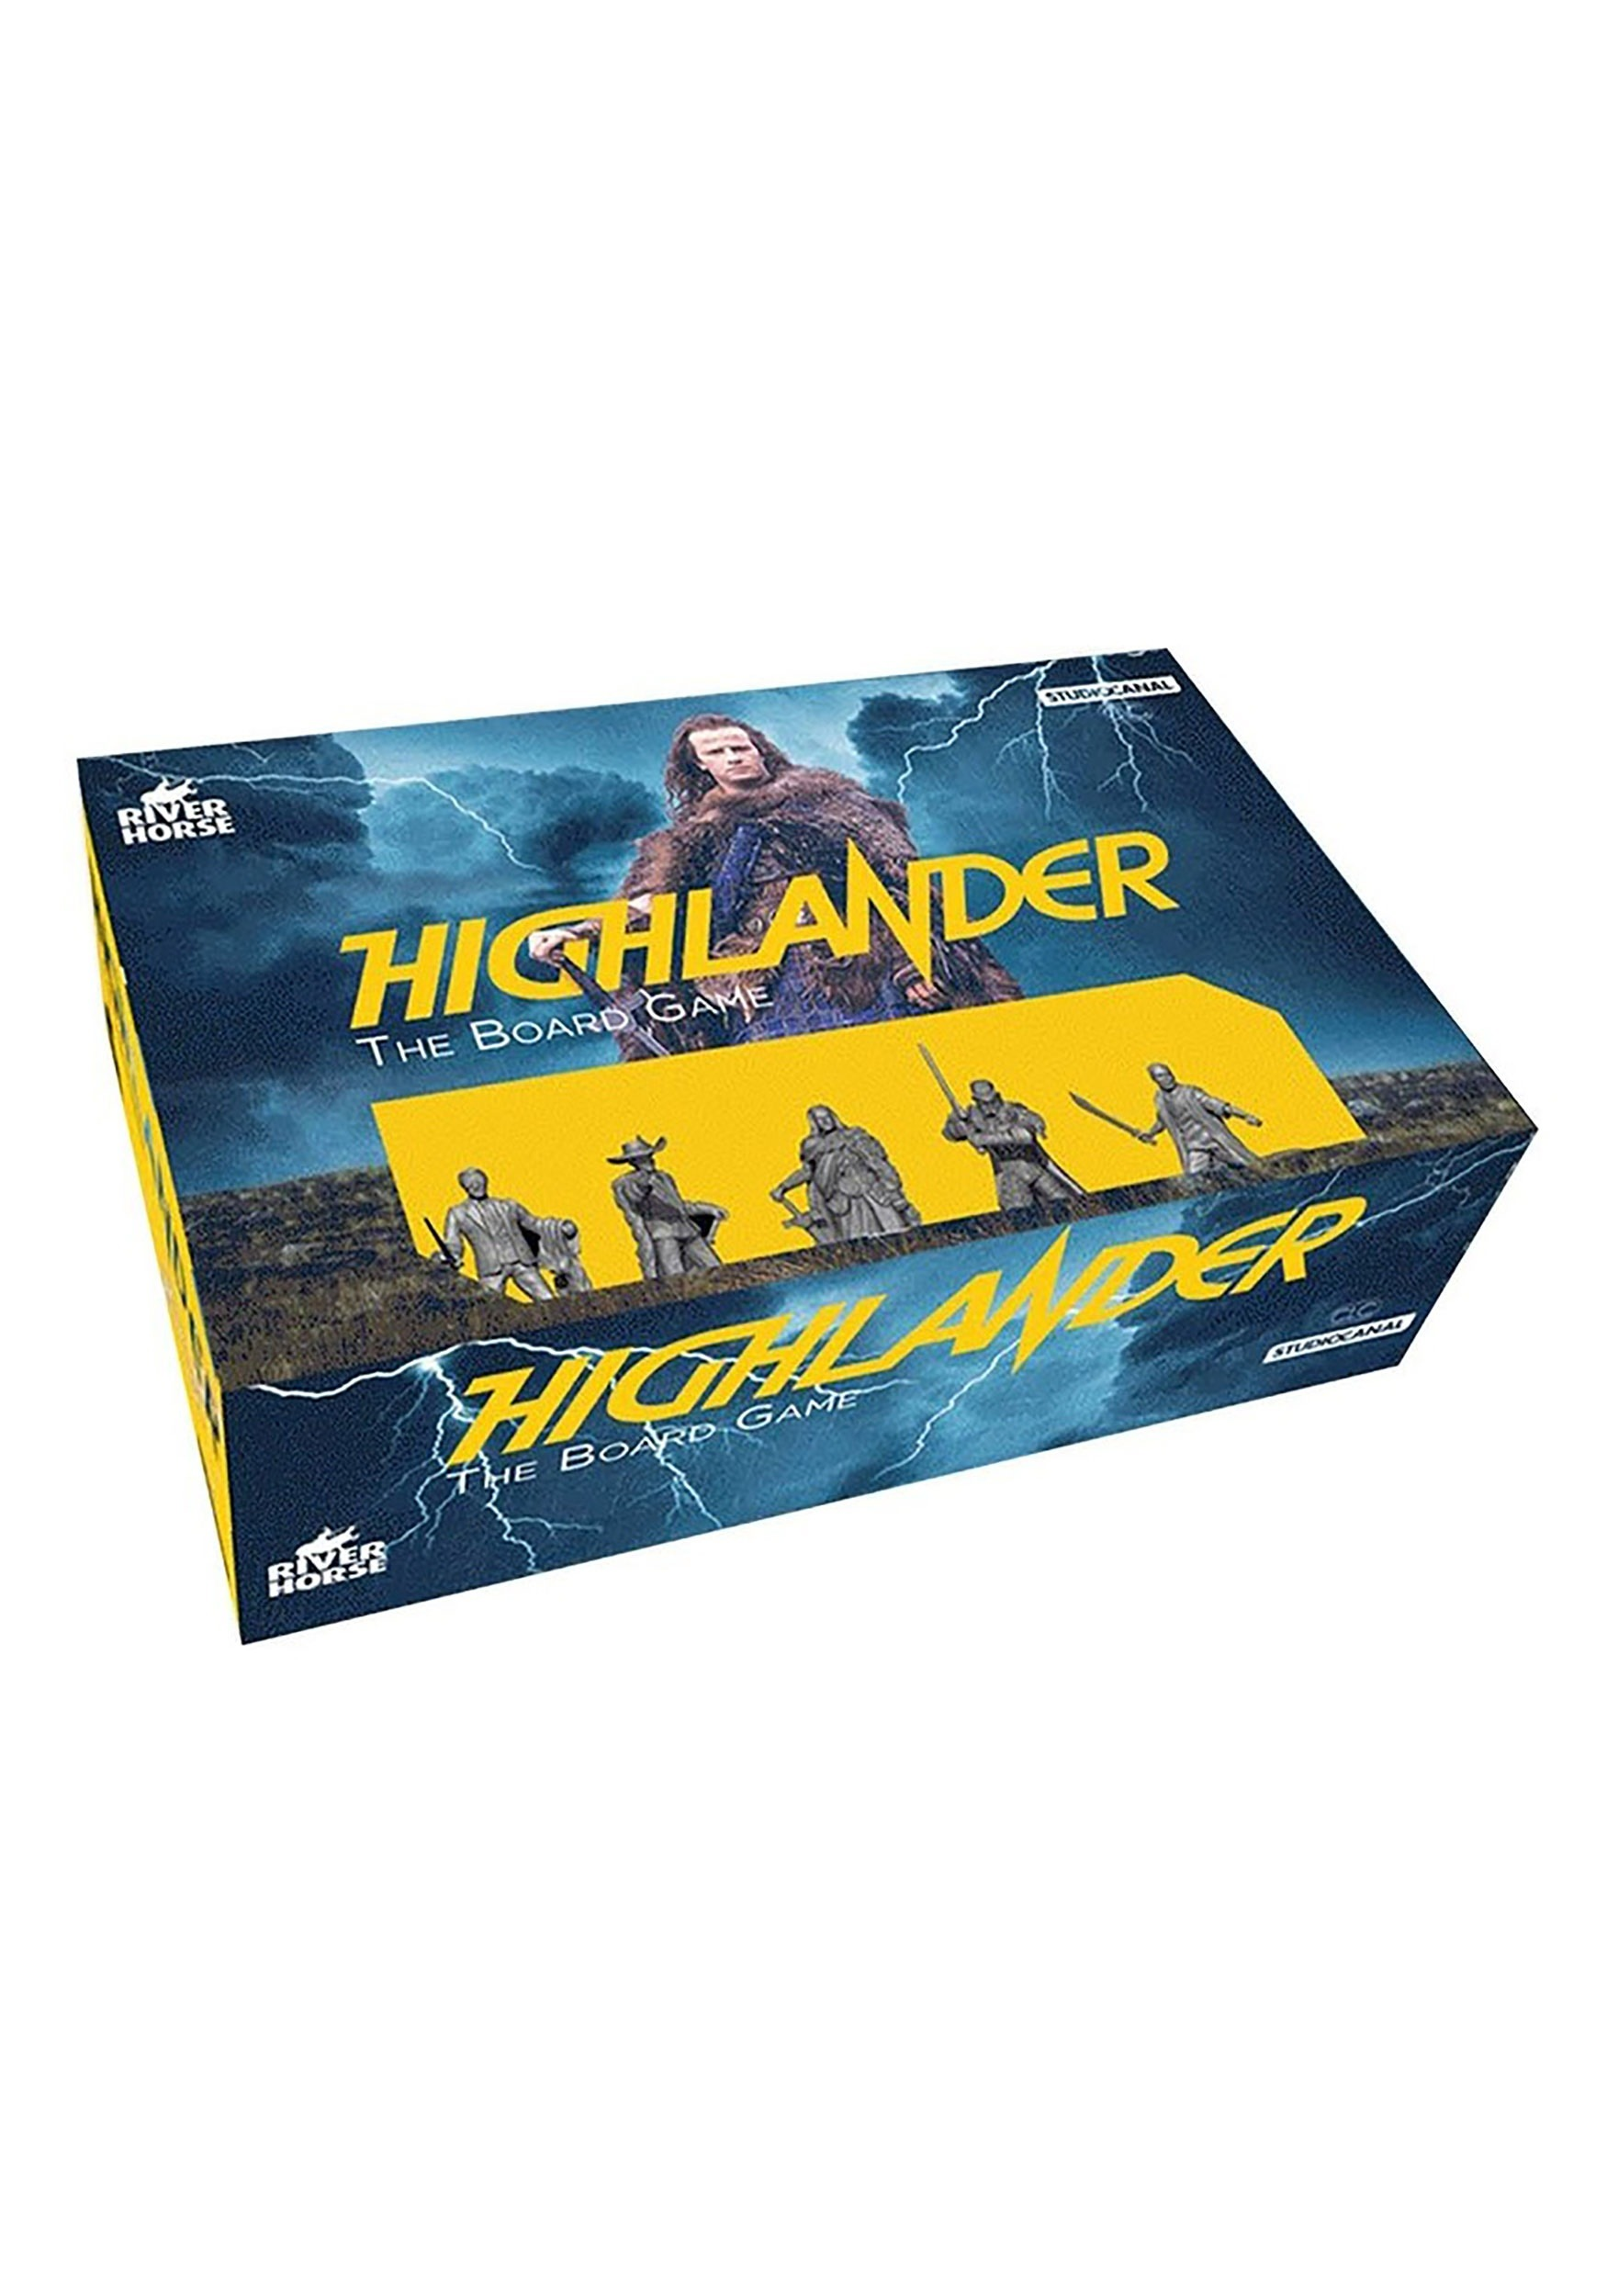 Highlander:_The_Board_Game_by_River_Horse